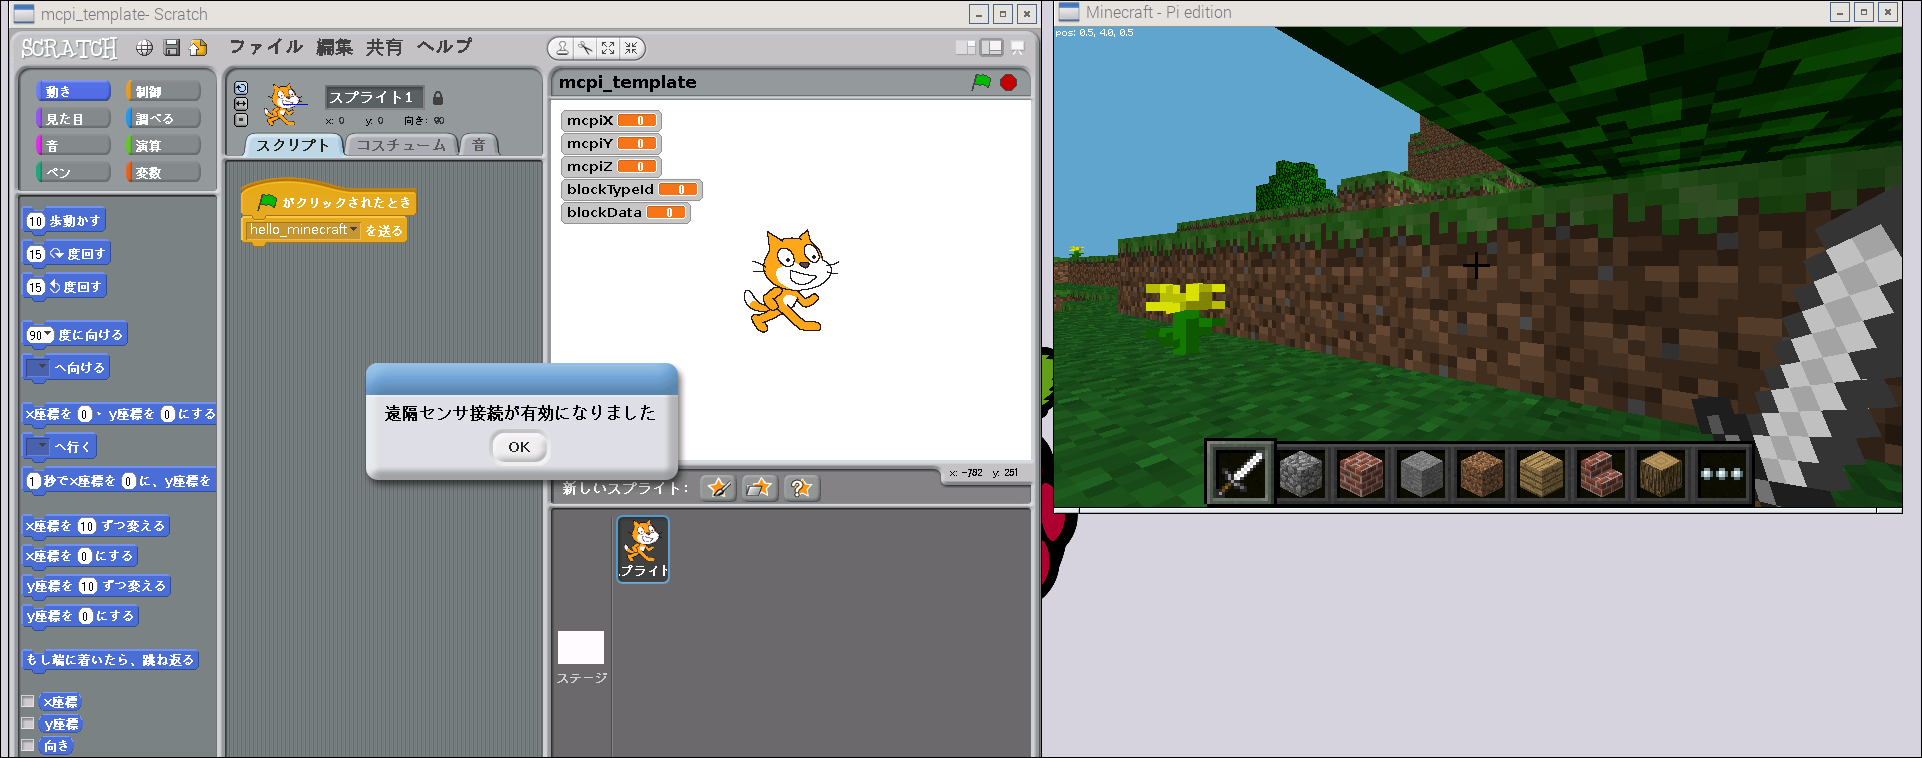 Scratch2MCPIとMinecraft Piが接続された